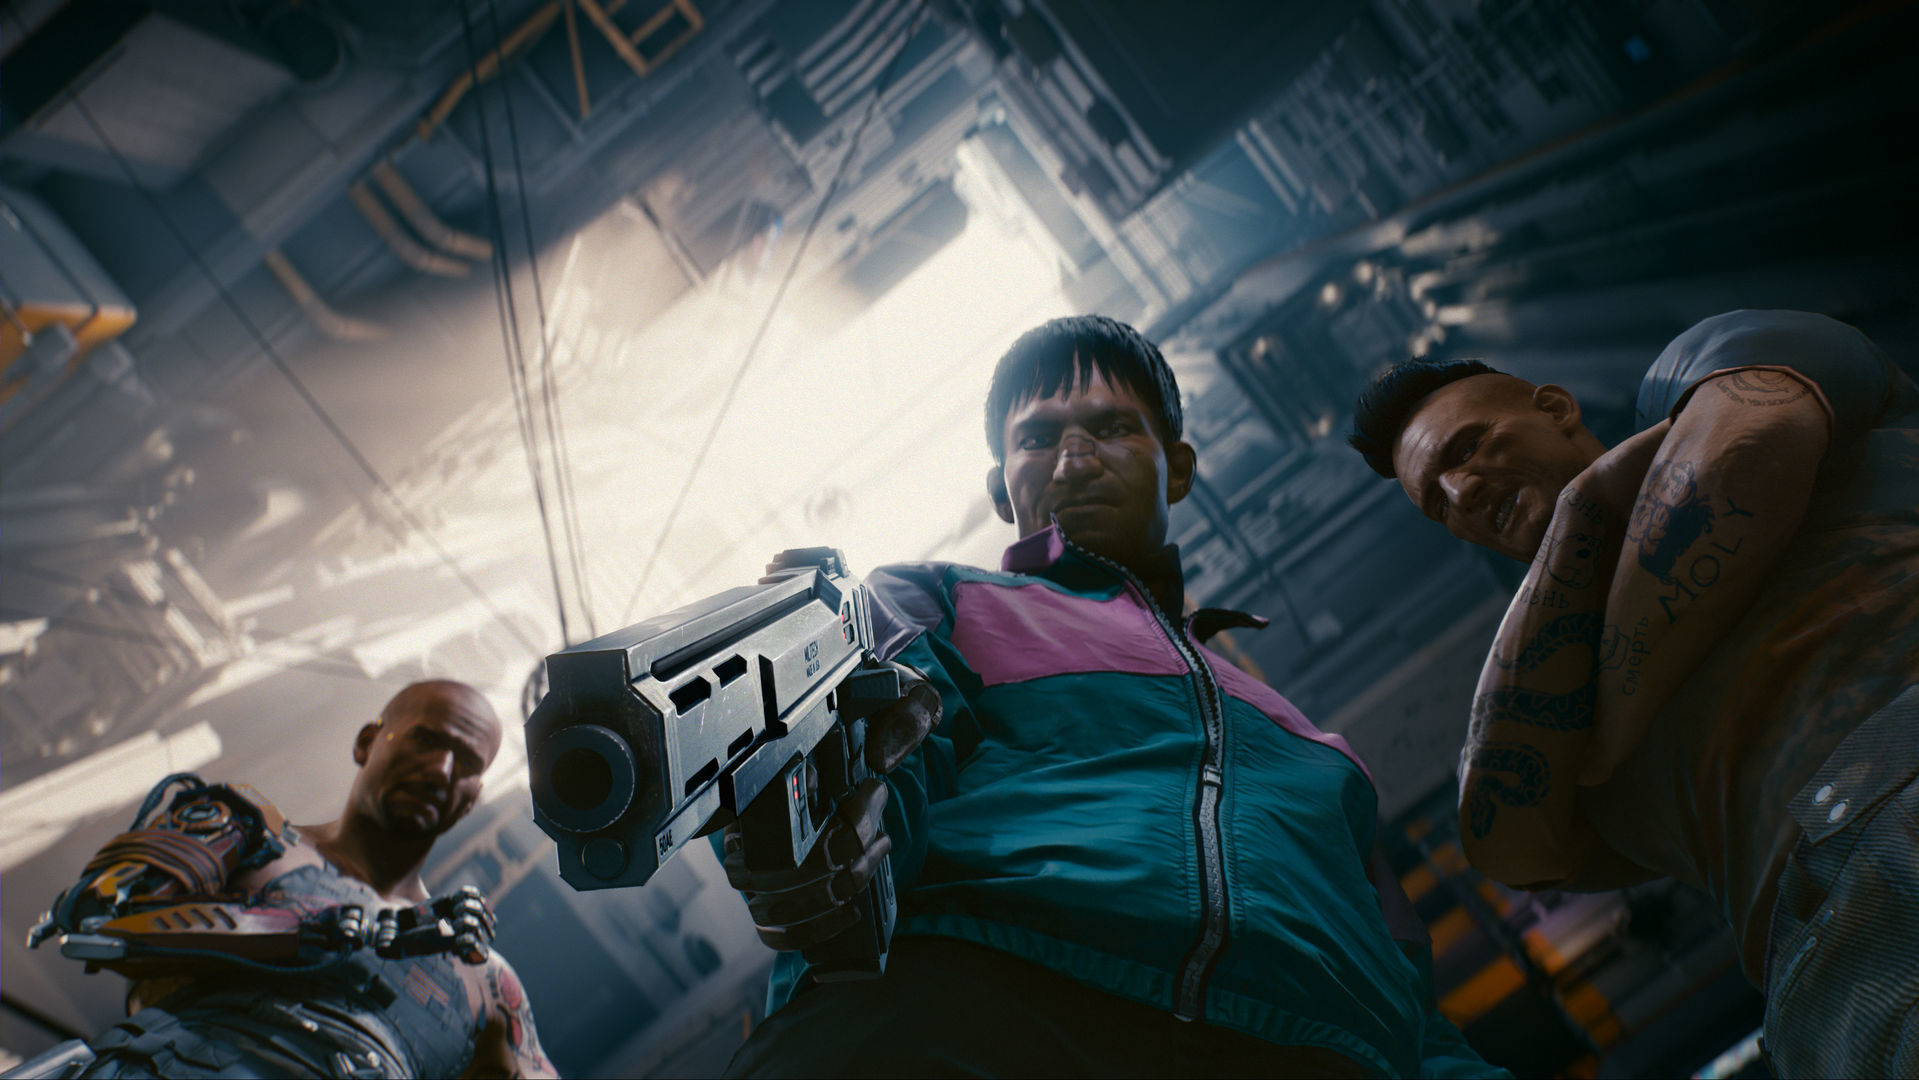 You can attack most people in Cyberpunk 2077, but kids and story NPCs are off limits - VG247